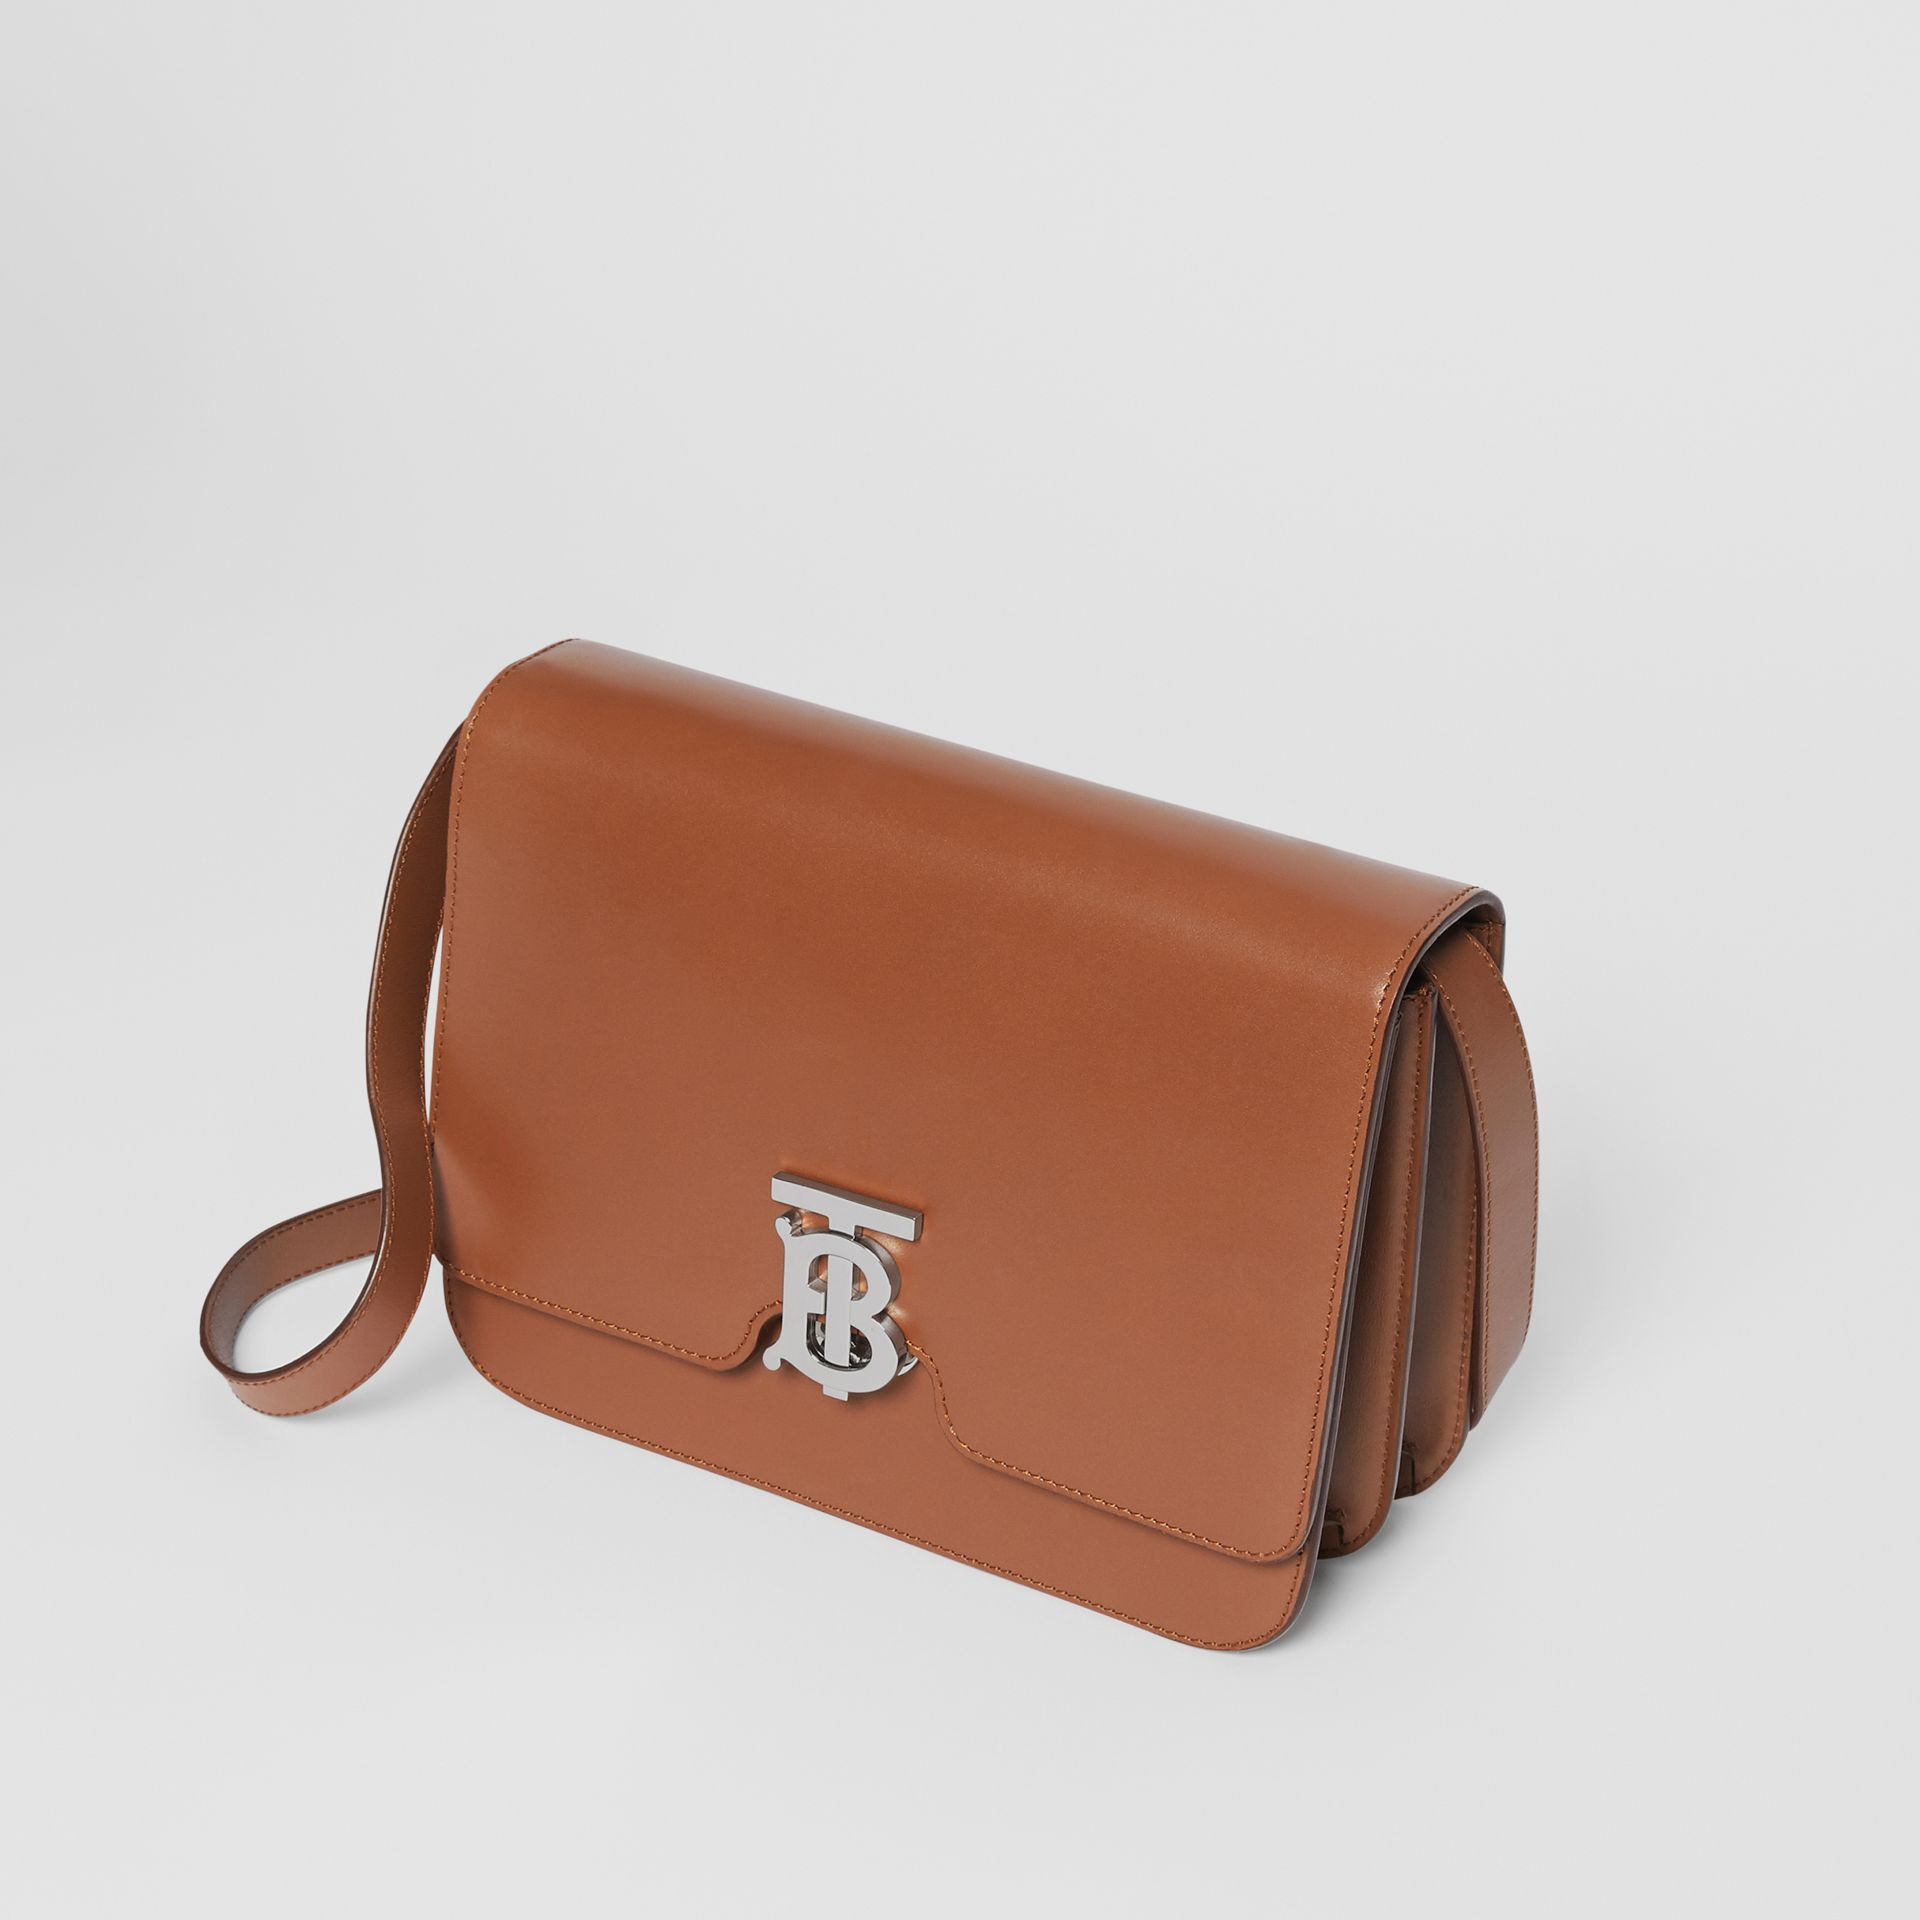 Medium Leather TB Bag in Malt Brown - Women | Burberry United States - gallery image 3